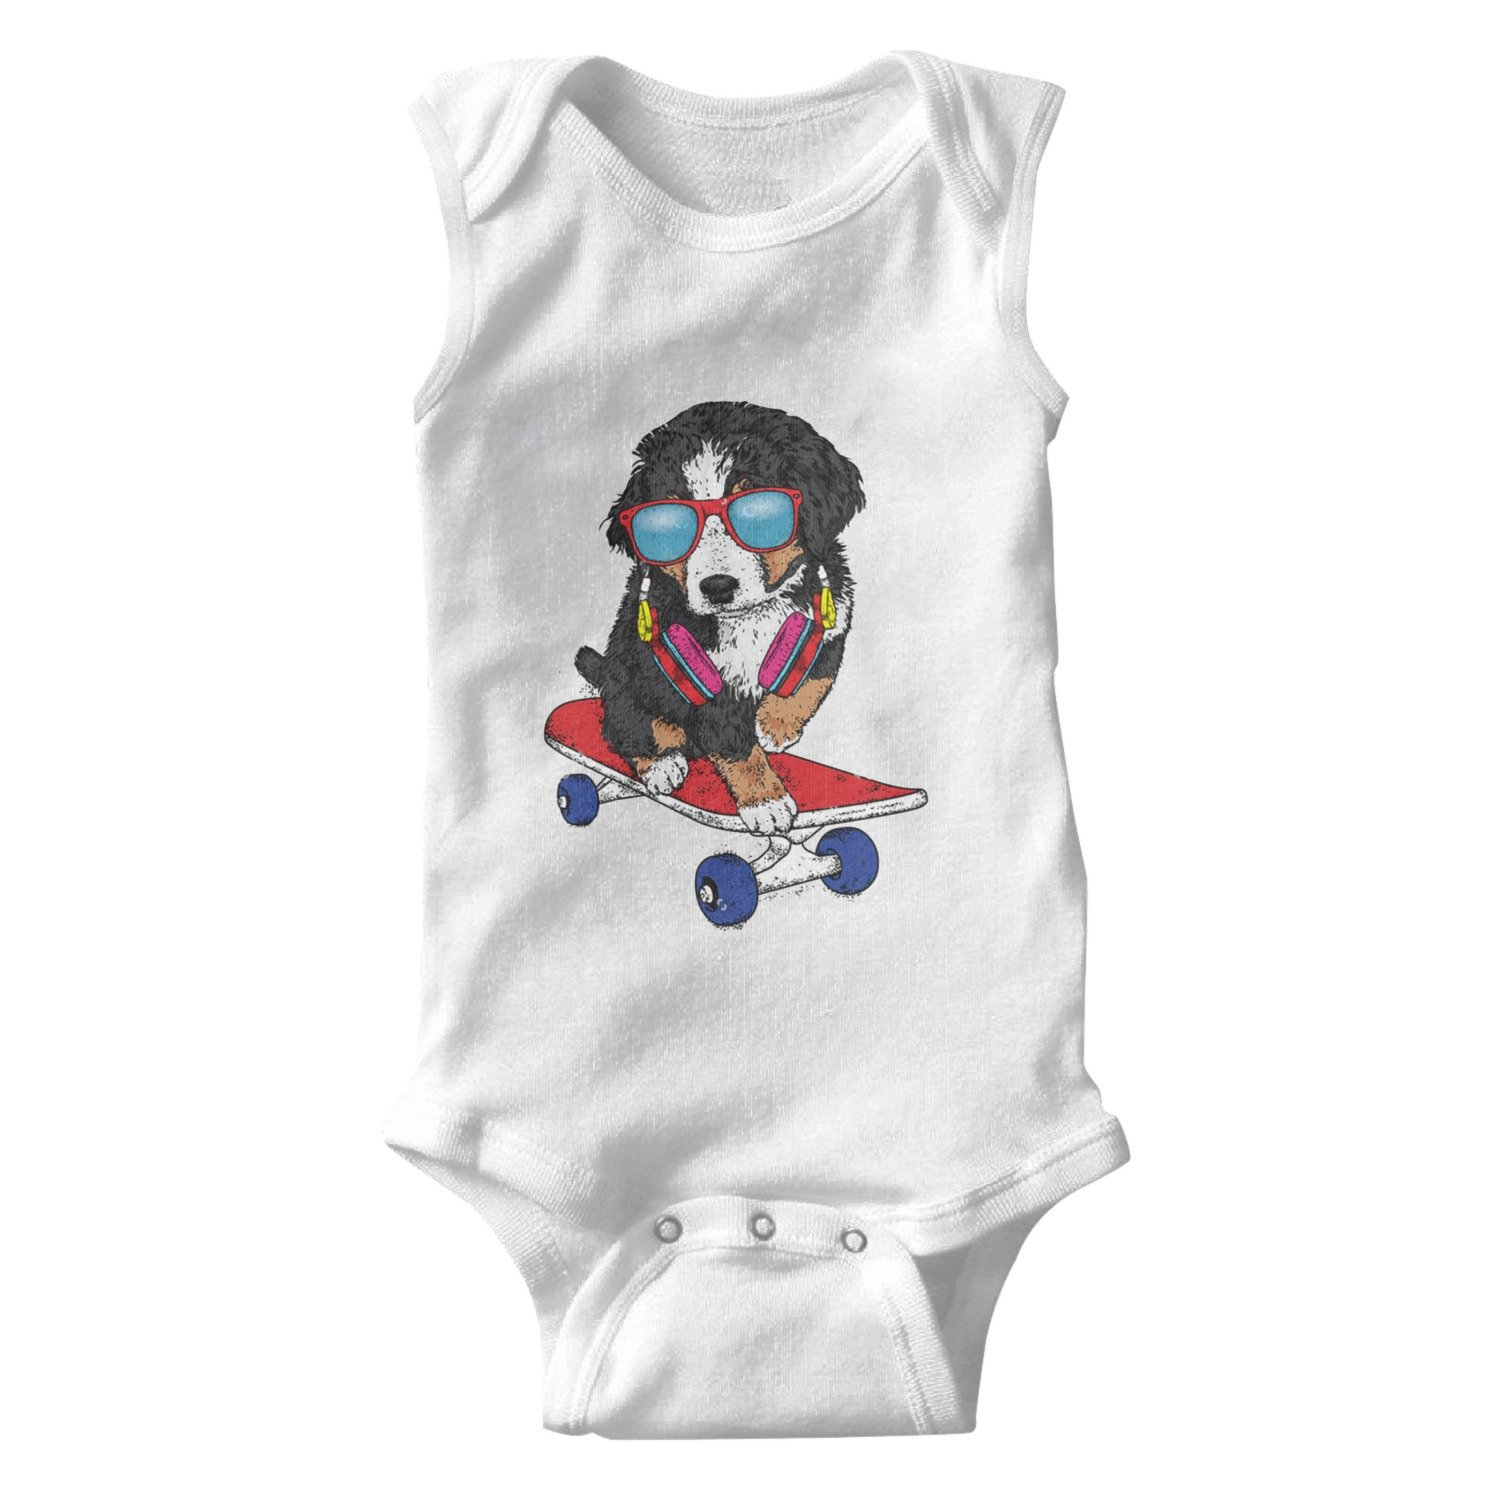 Funny Puppy Dog On Skateboard with Glasses Unisex Baby Cotton Sleeveless Baby Jumpsuit Baby Onesies White